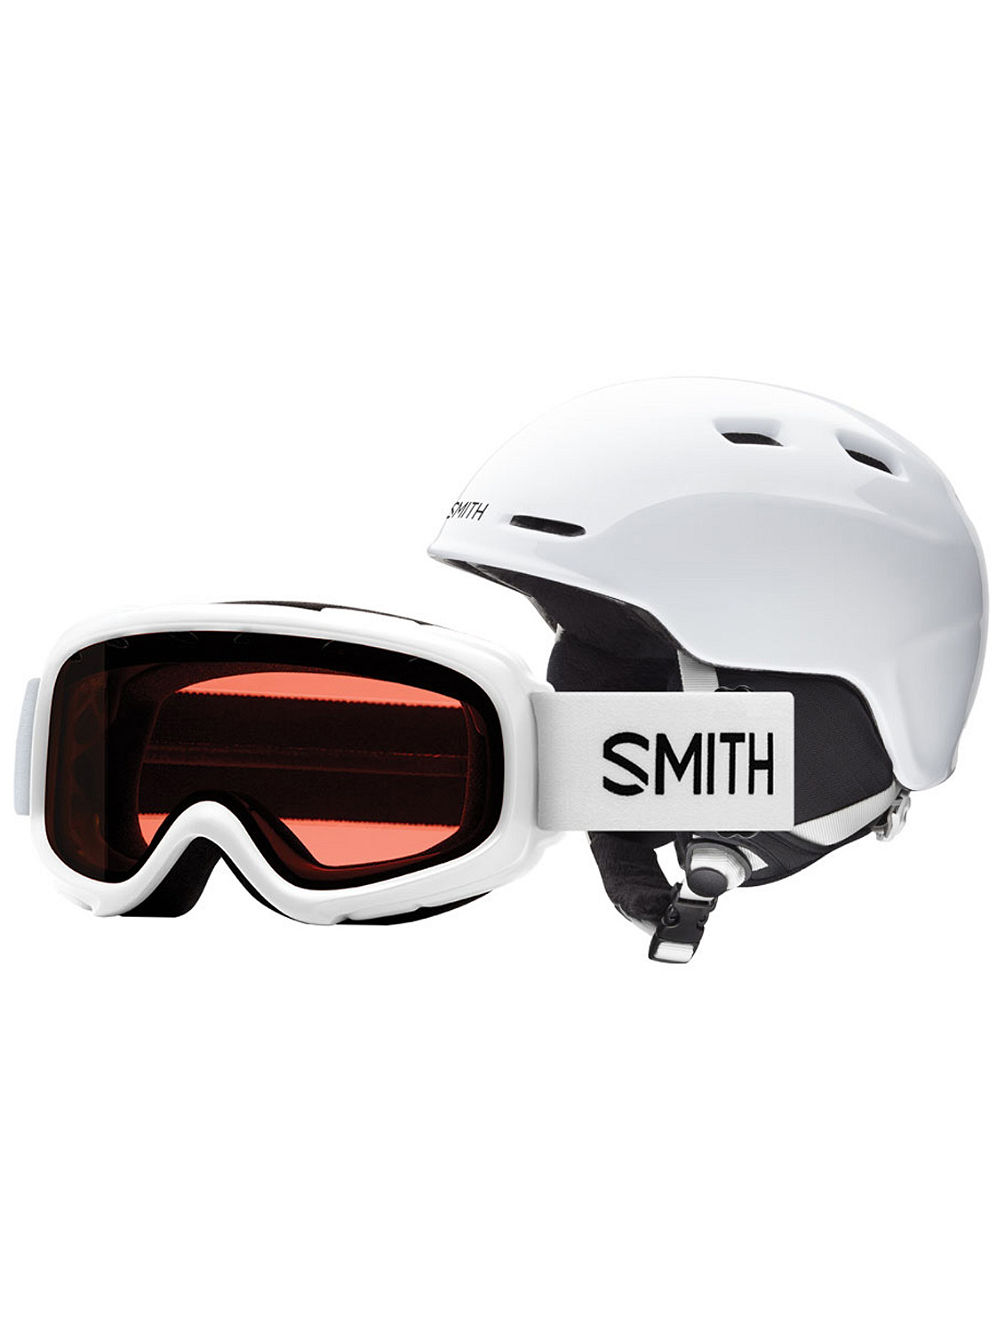 Zoom Jr/Gambler Helmet Youth